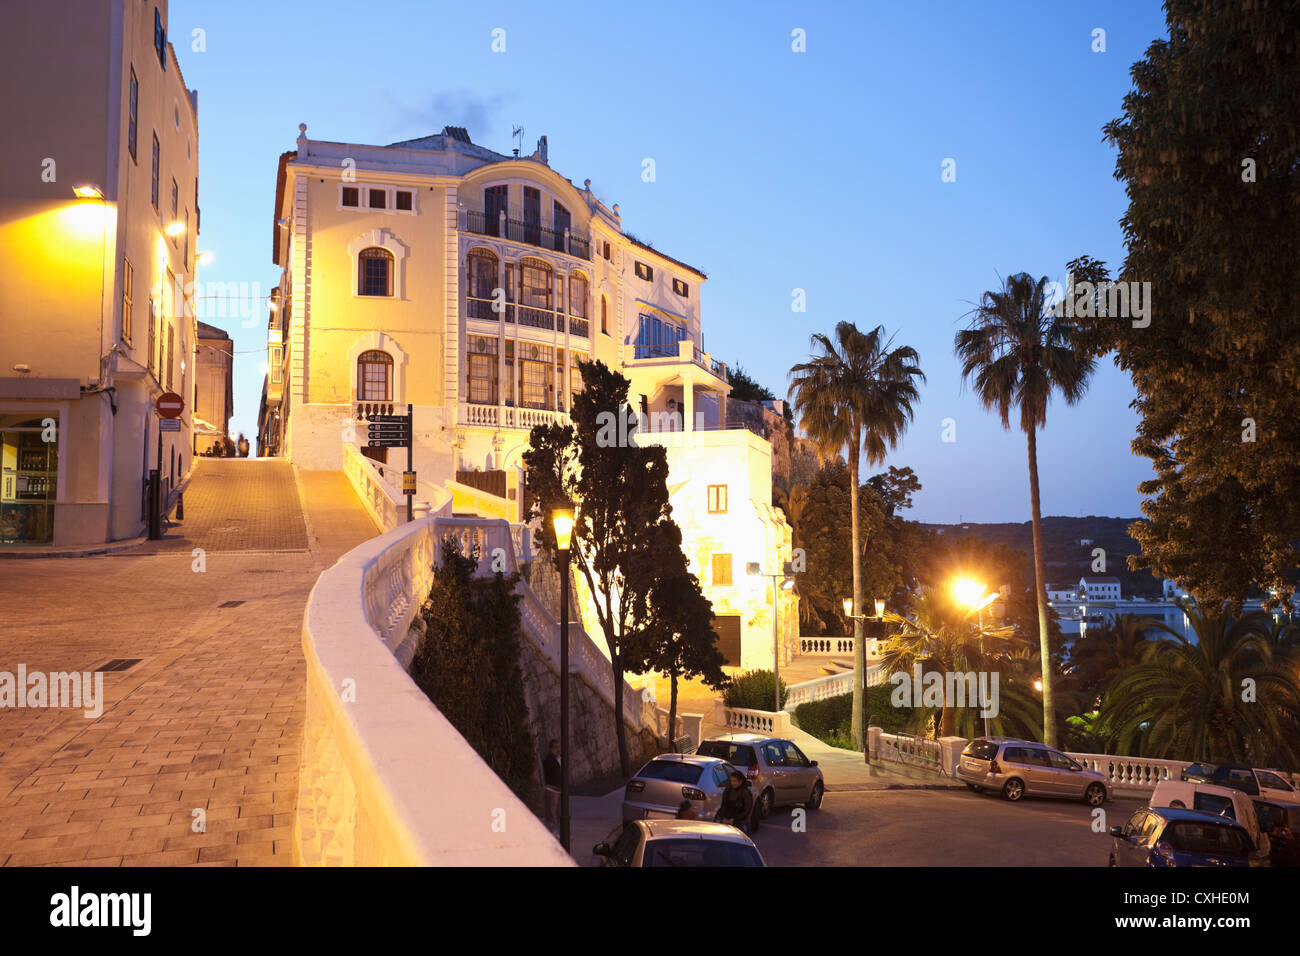 Spain, Menorca, Mahon, Classicism in old town - Stock Image